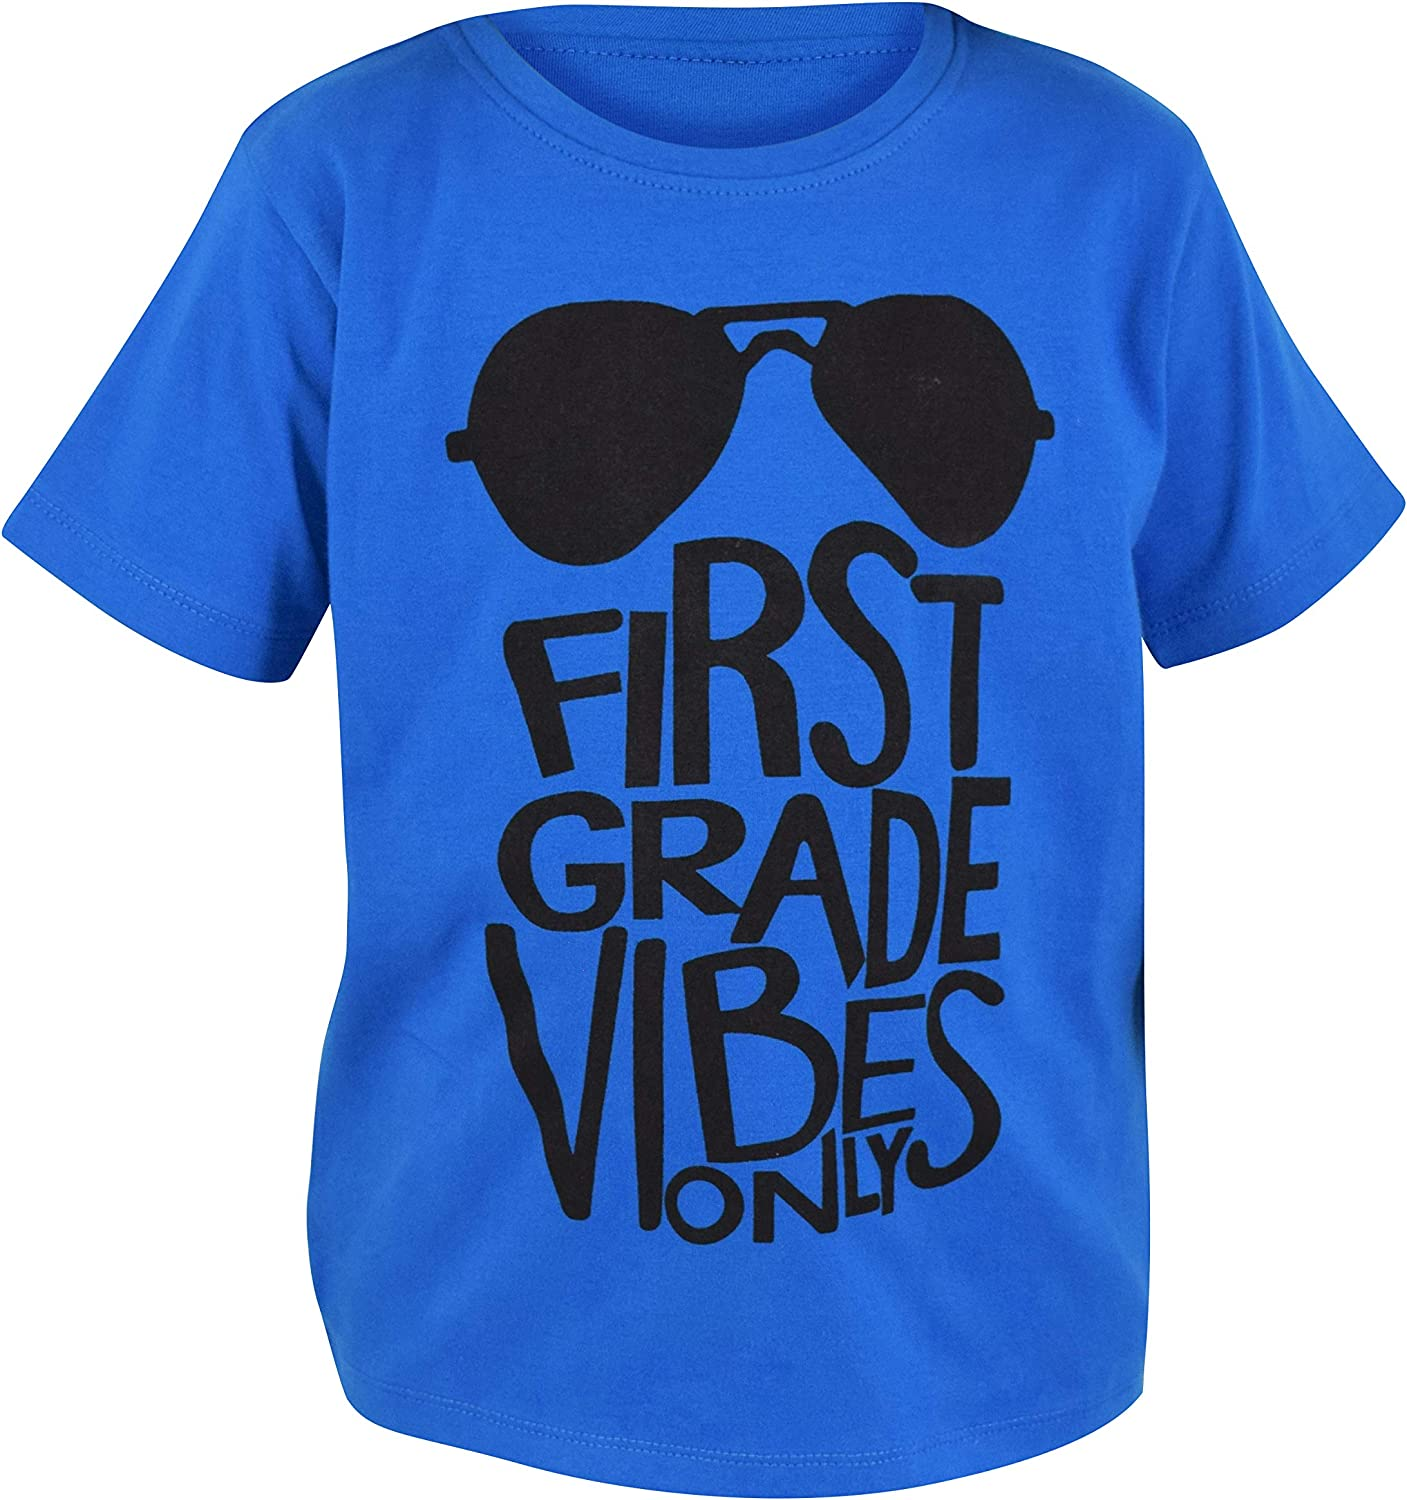 Unique Baby Boys 1st service Grade Vibes School Selling Only to T Shirt Back